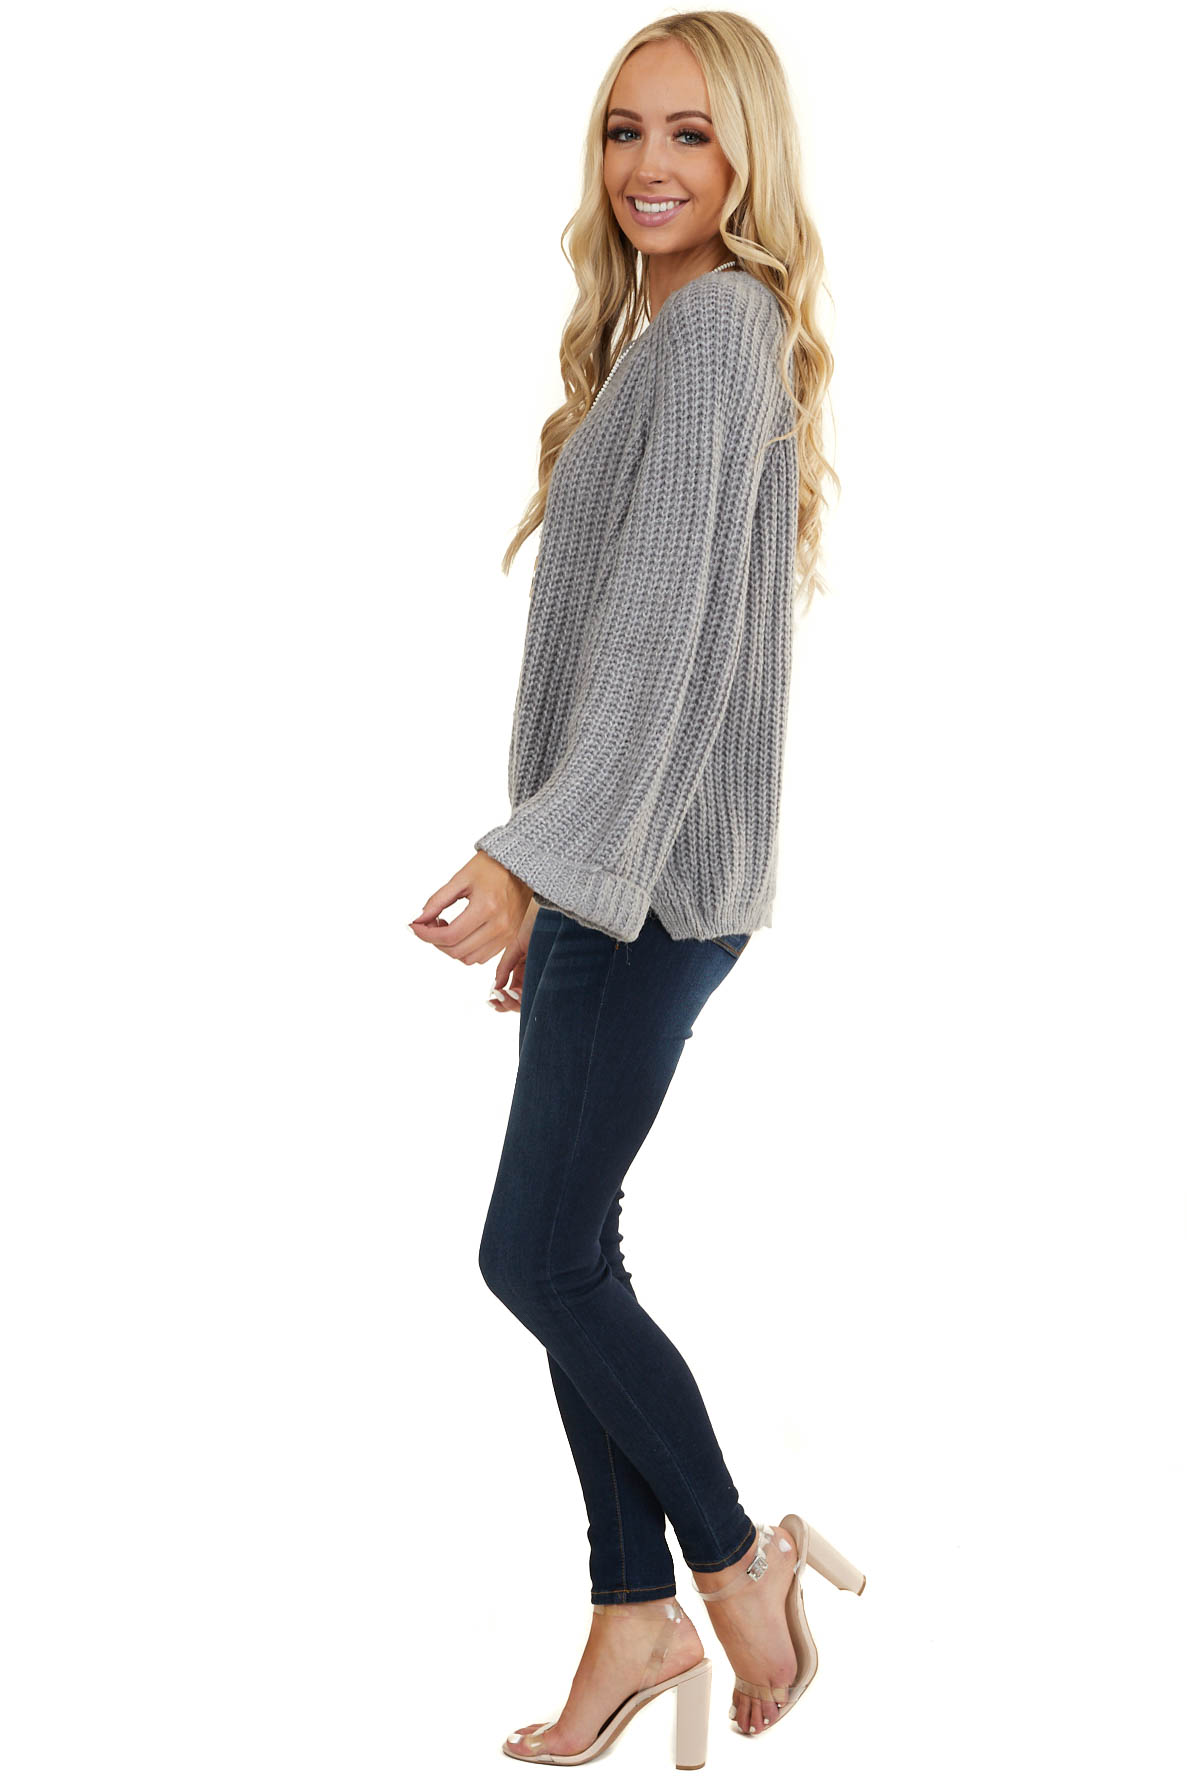 Stormy Grey Oversized Sweater with Long Cuffed Flowy Sleeves